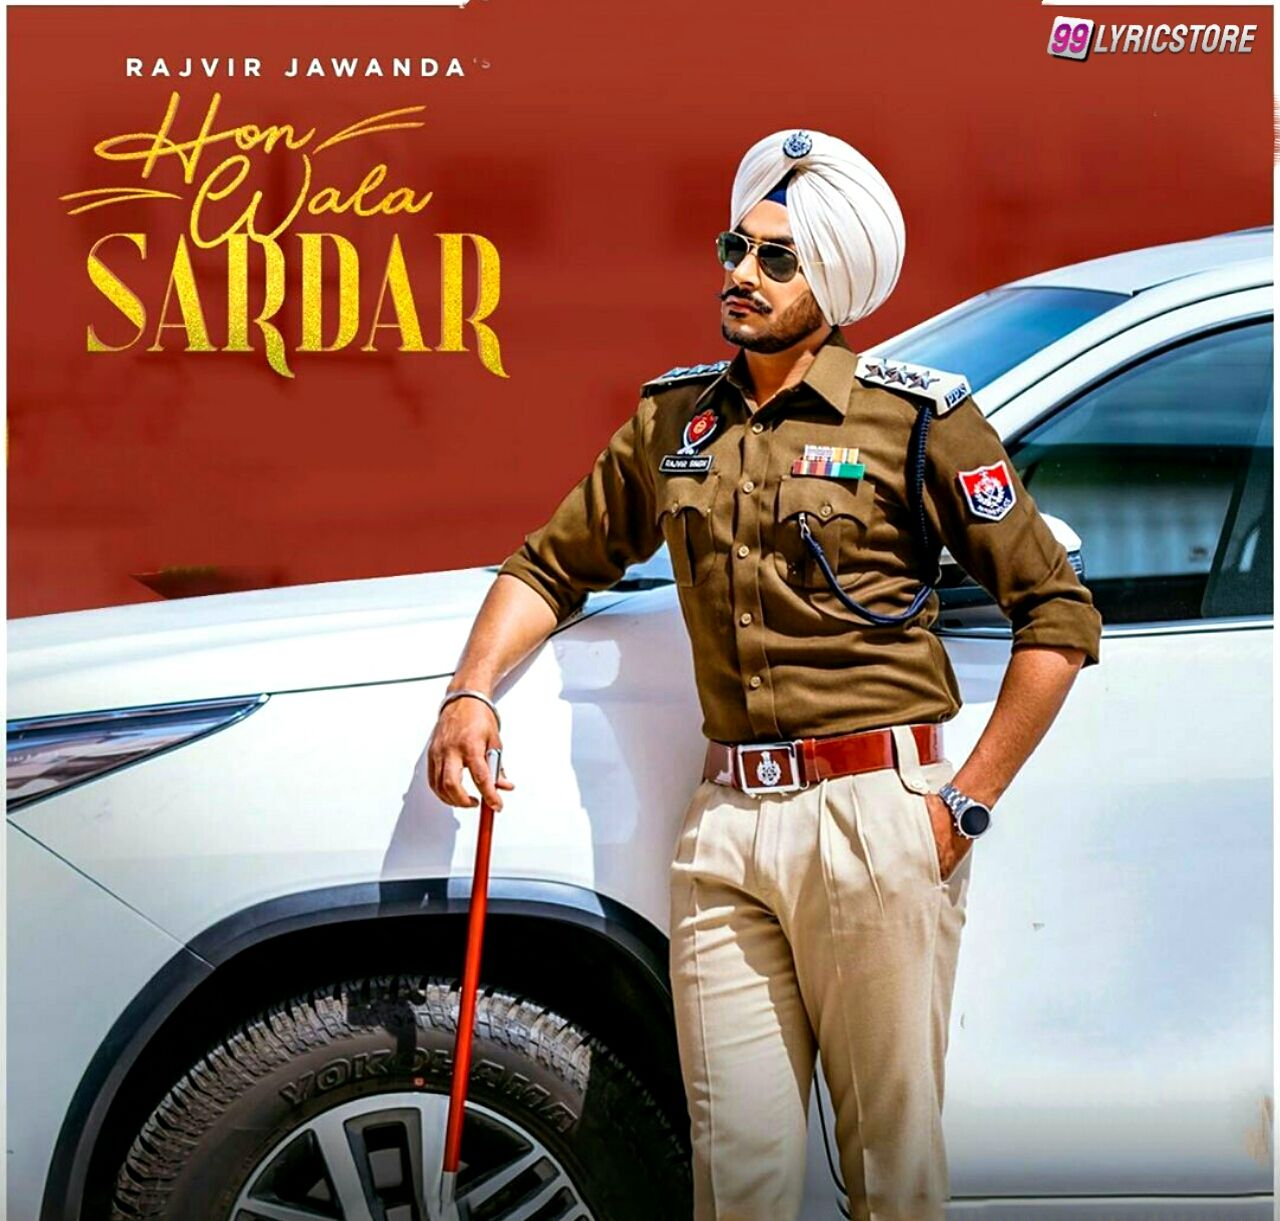 Hon Wala Sardar Punjabi Song Lyrics sung by Rajvir Jawanda